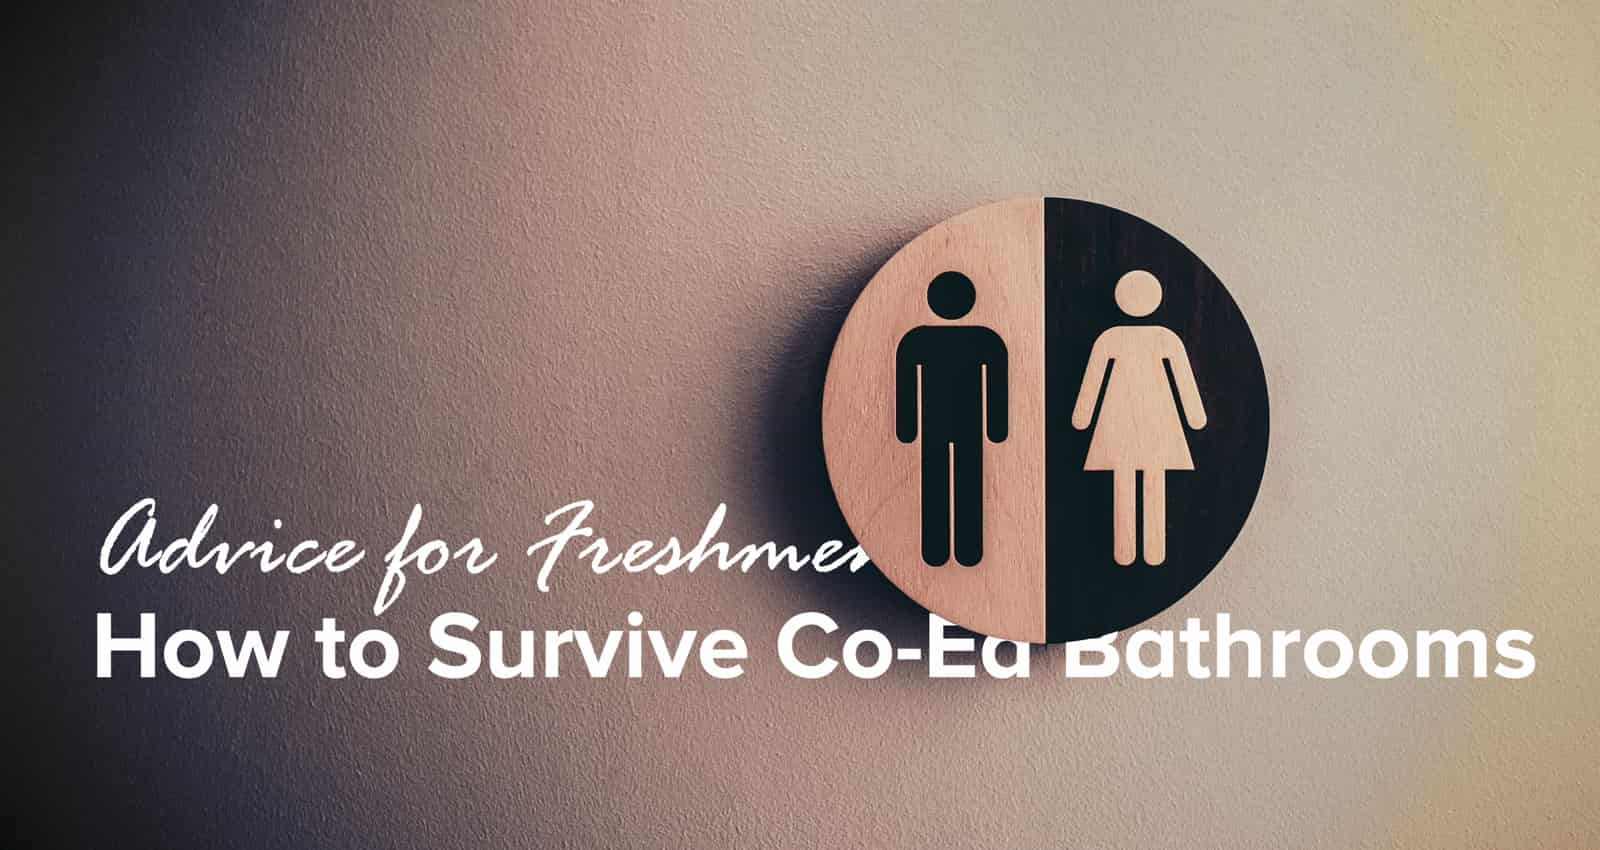 Advice for Freshmen: How to survive co-ed bathrooms